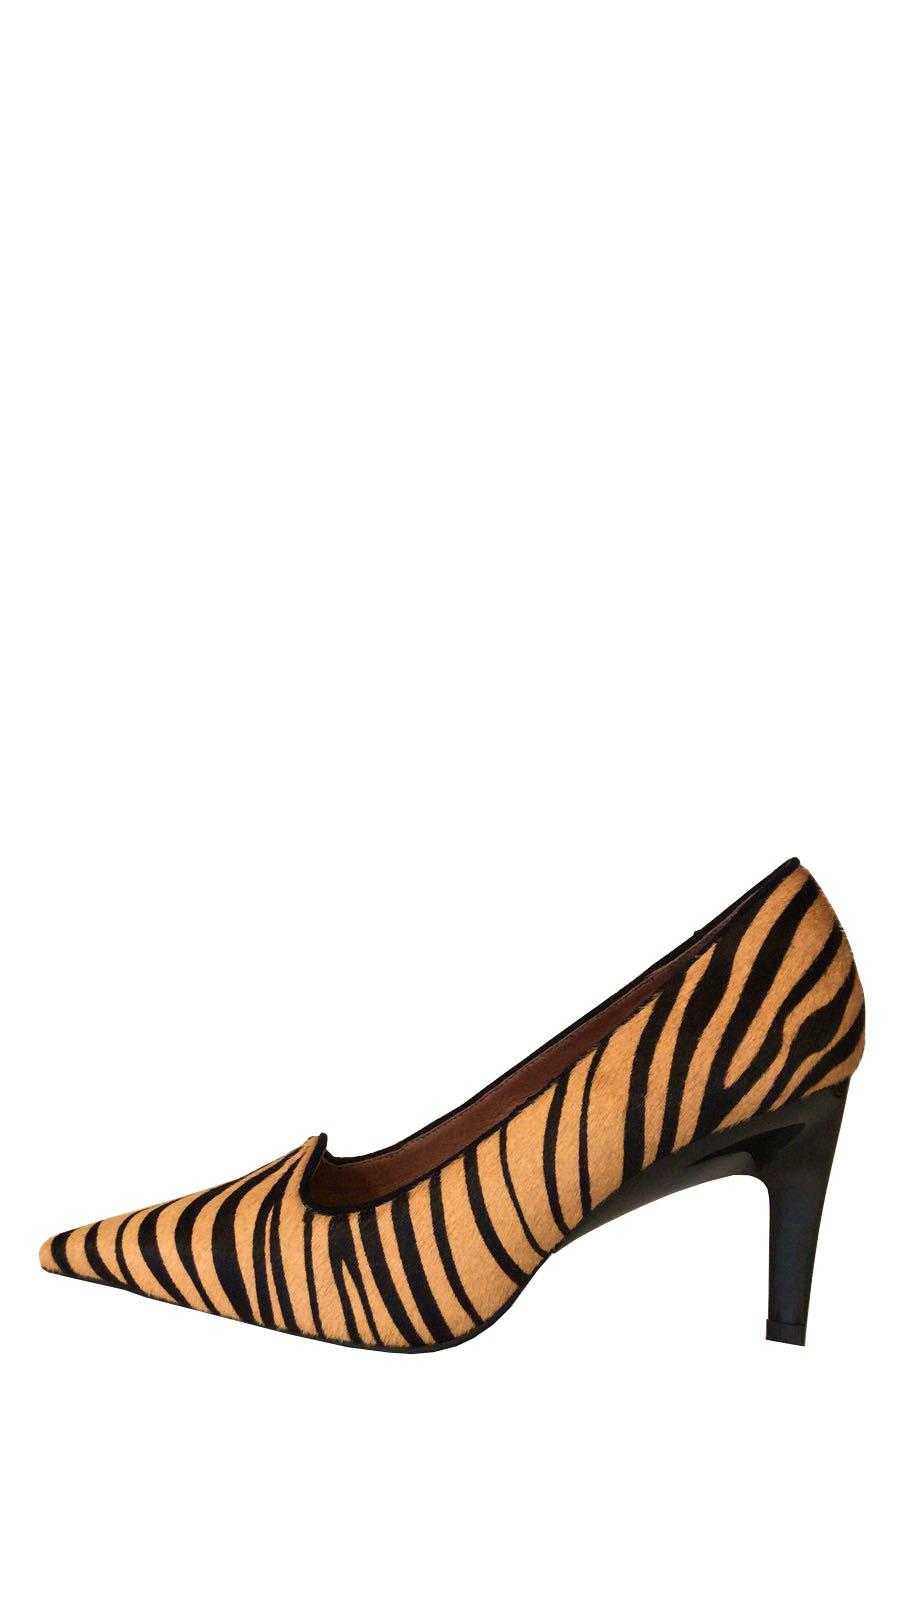 OUTLET Jeffrey Campbell - Zebra